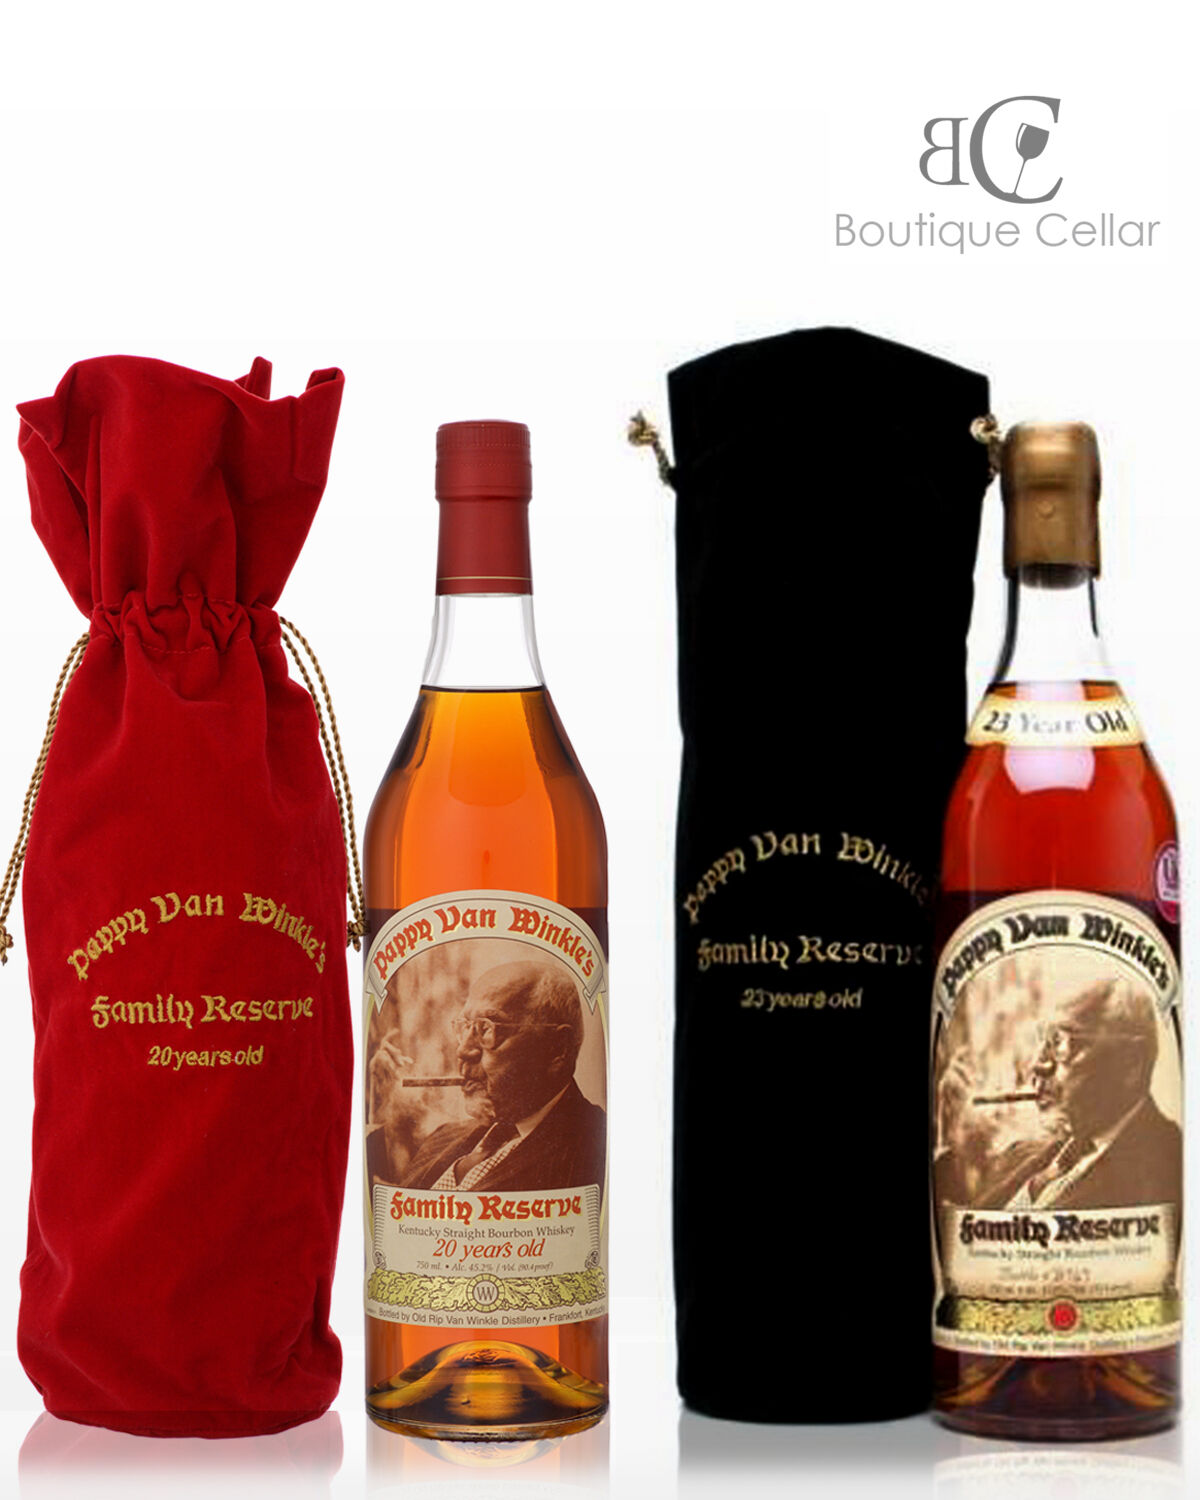 Pappy Van Winkle 20 + 23 Year Old Family Reserve Bourbon Whiskey 700ml SIGNED